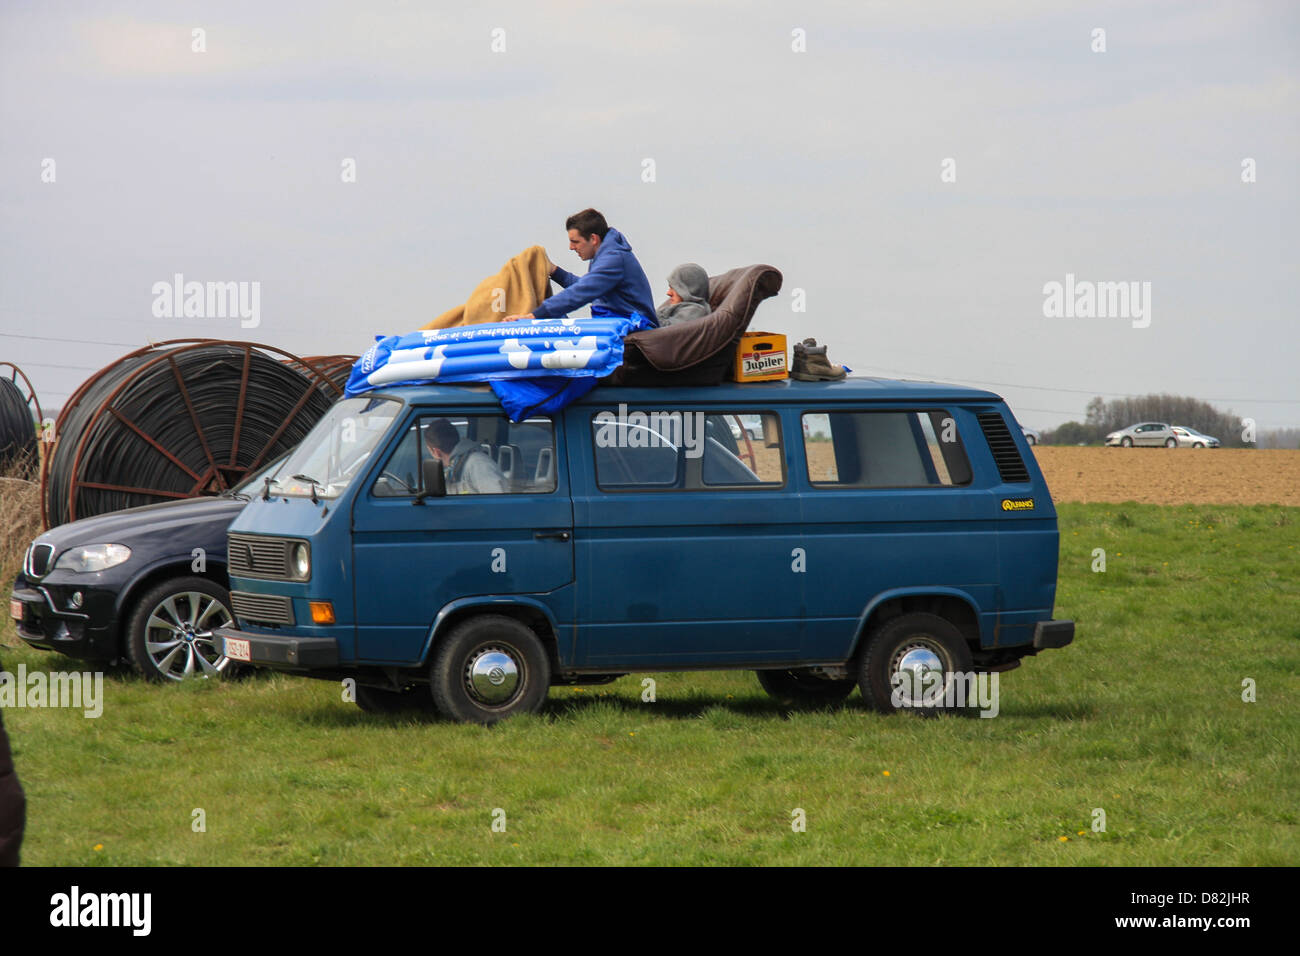 Paris - Roubaix crazy spectators sitting on the roof of their car, waiting for the race. - Stock Image